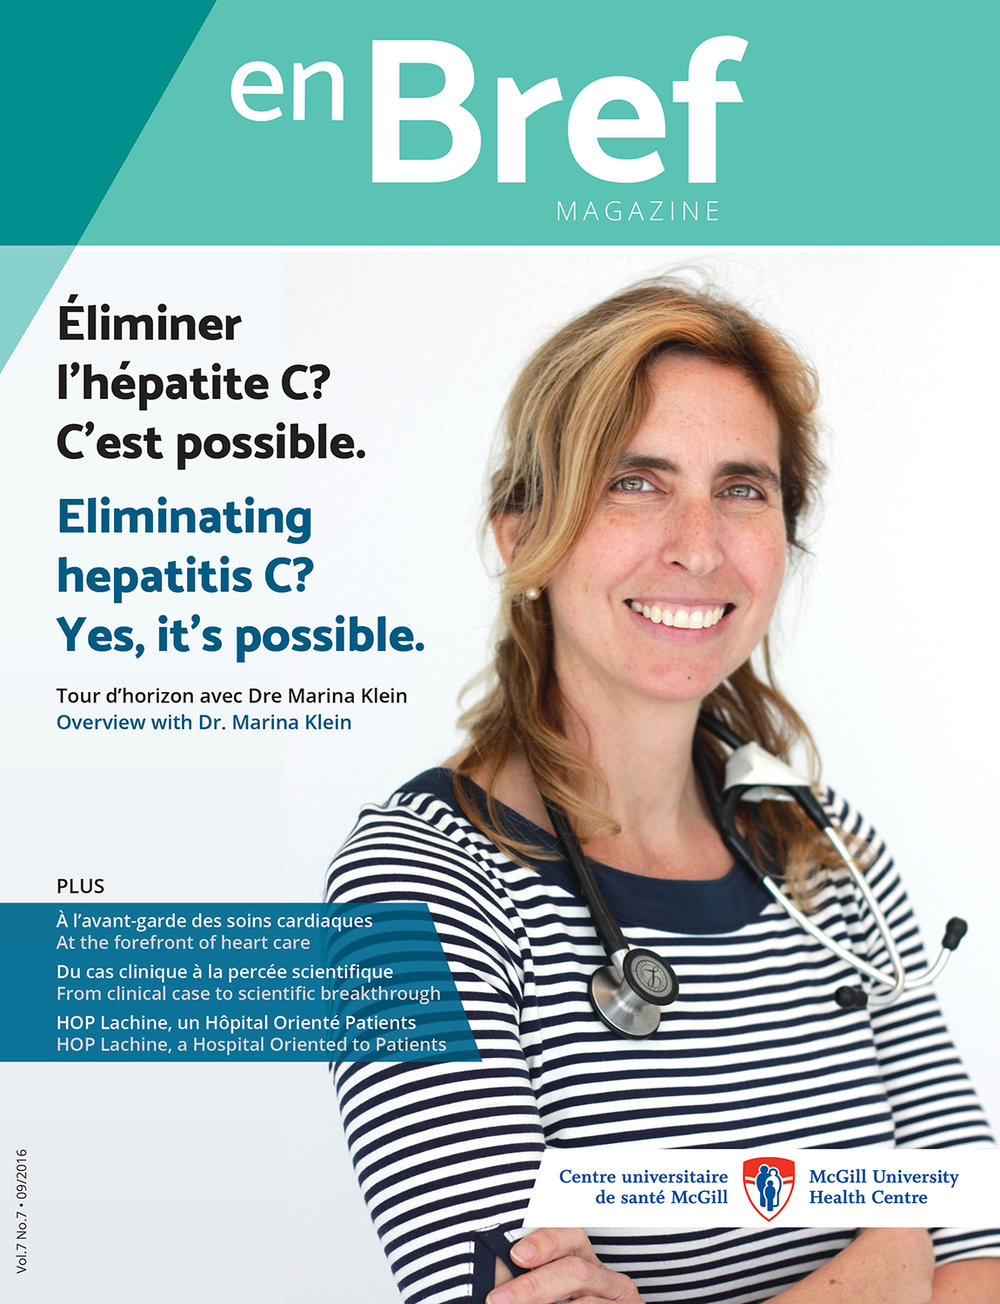 enBref September 2016 cover.jpg